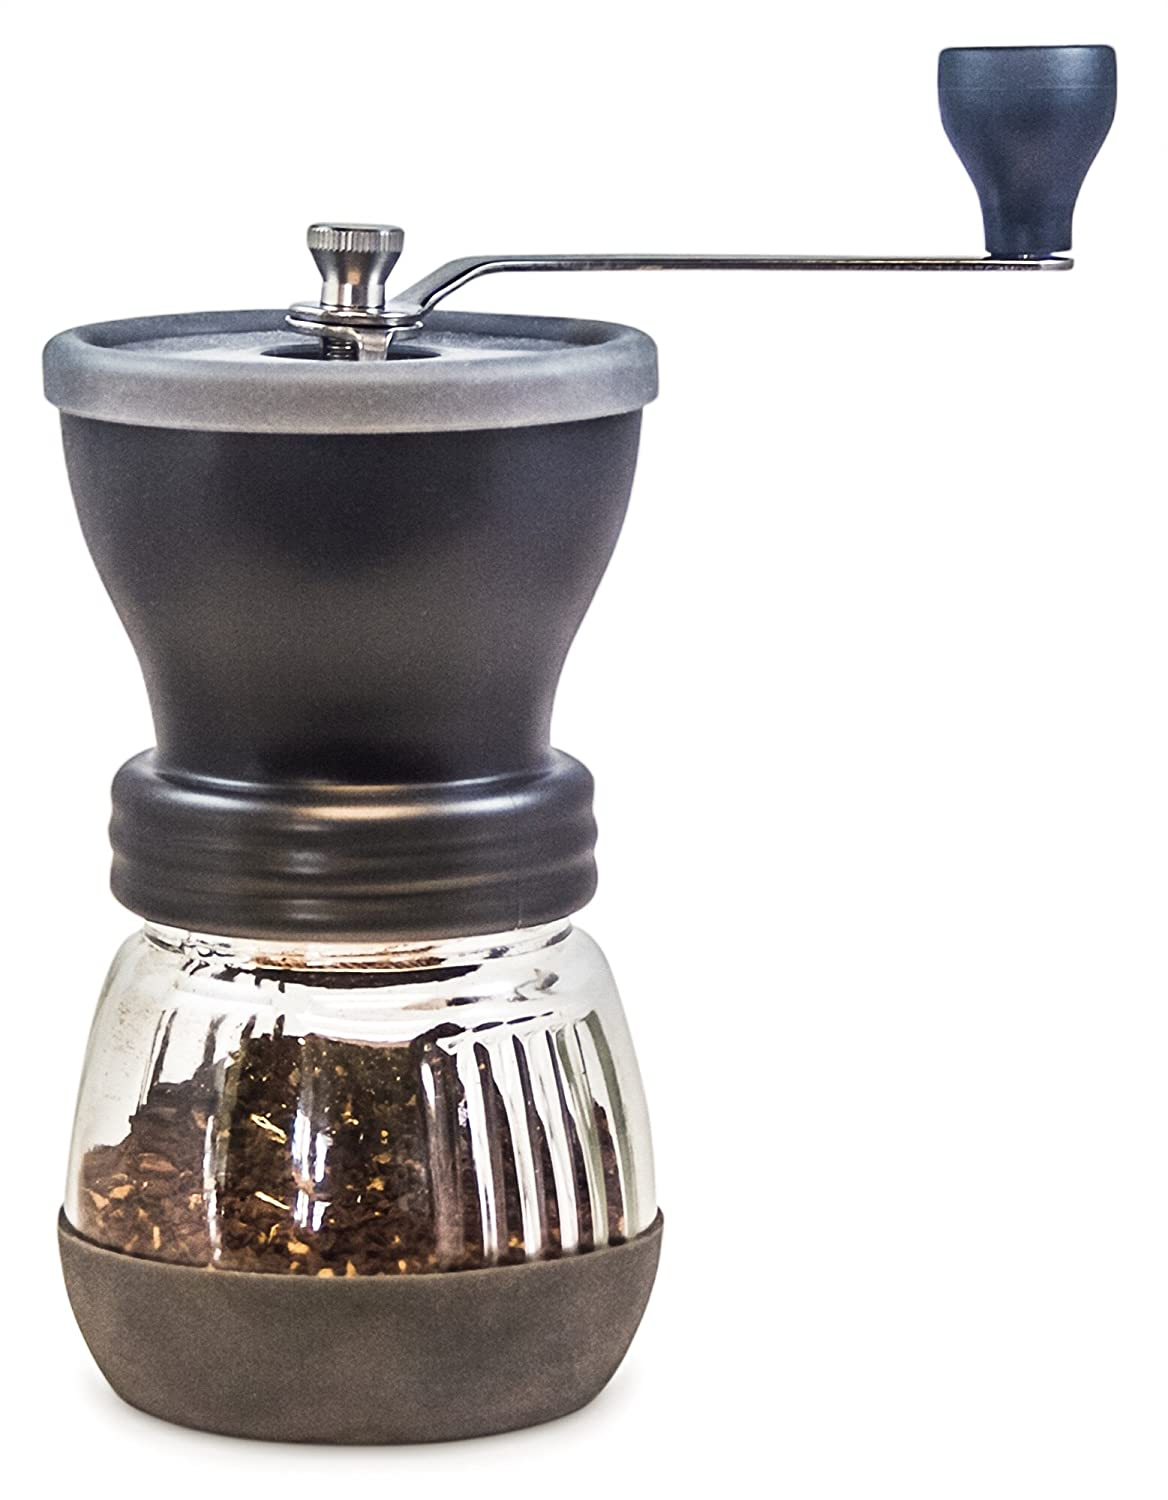 Khaw-Fee HG1B Manual Burr Coffee Grinder Review